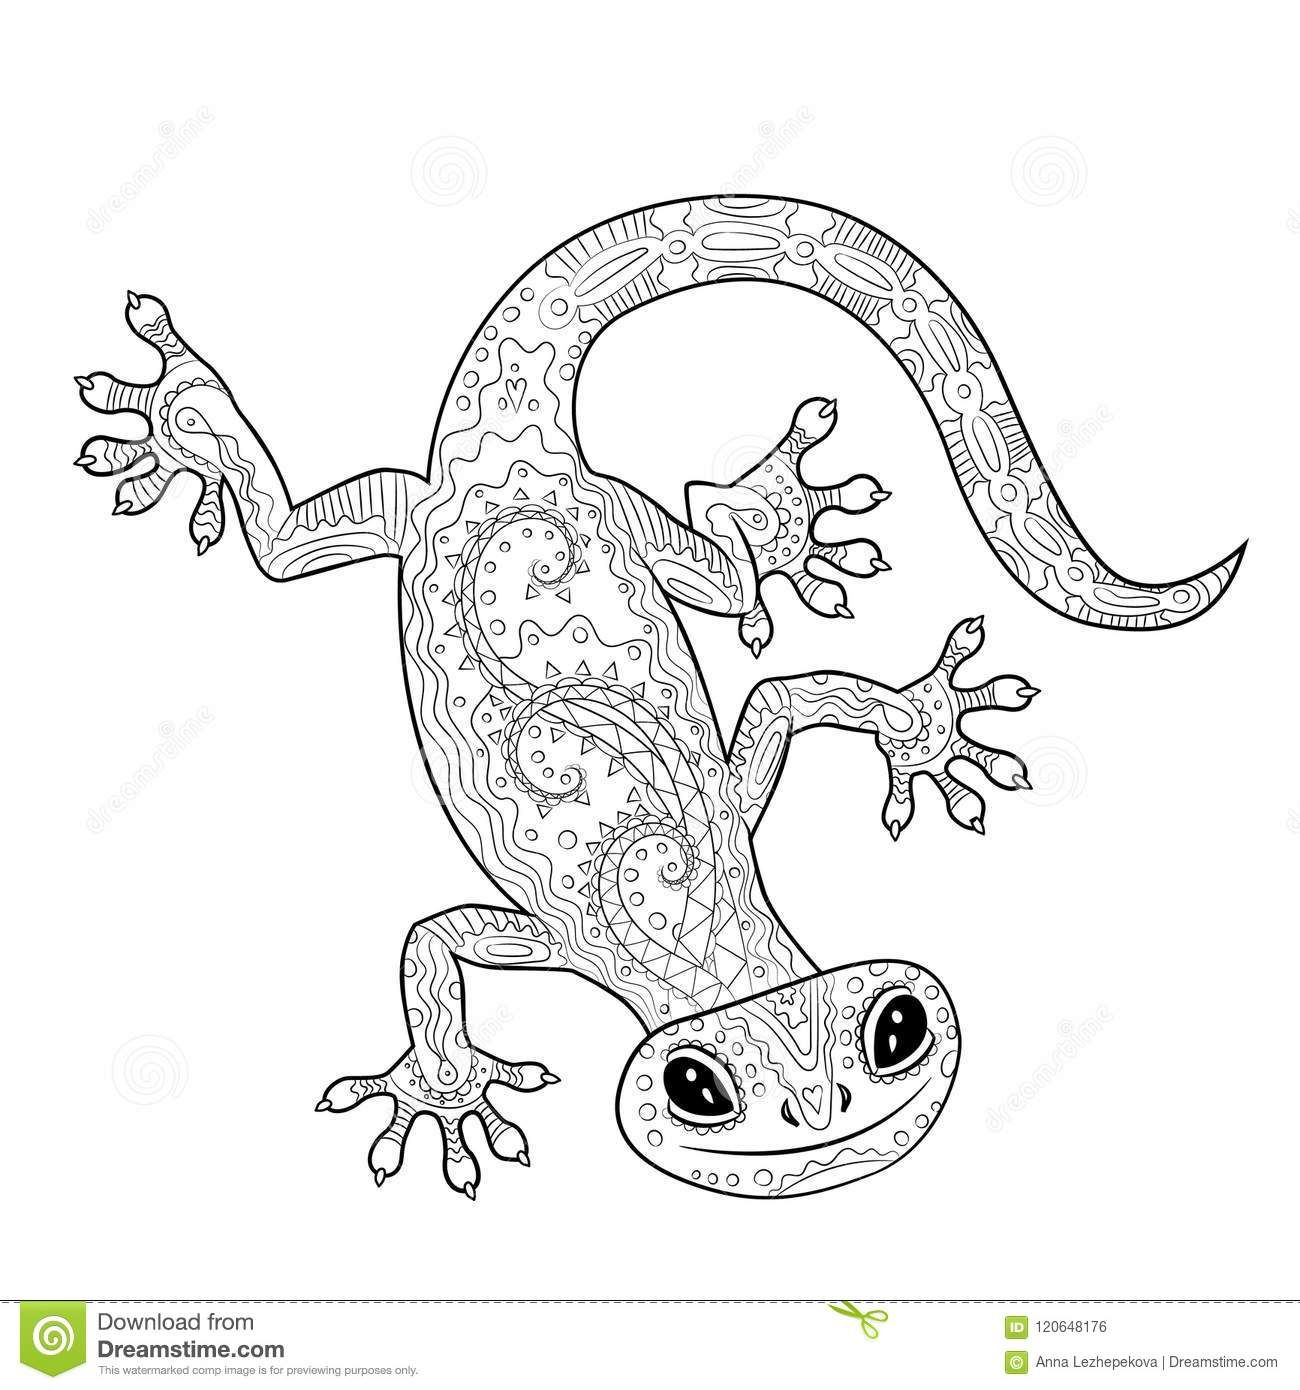 Pin On Adult Color Images Reptiles